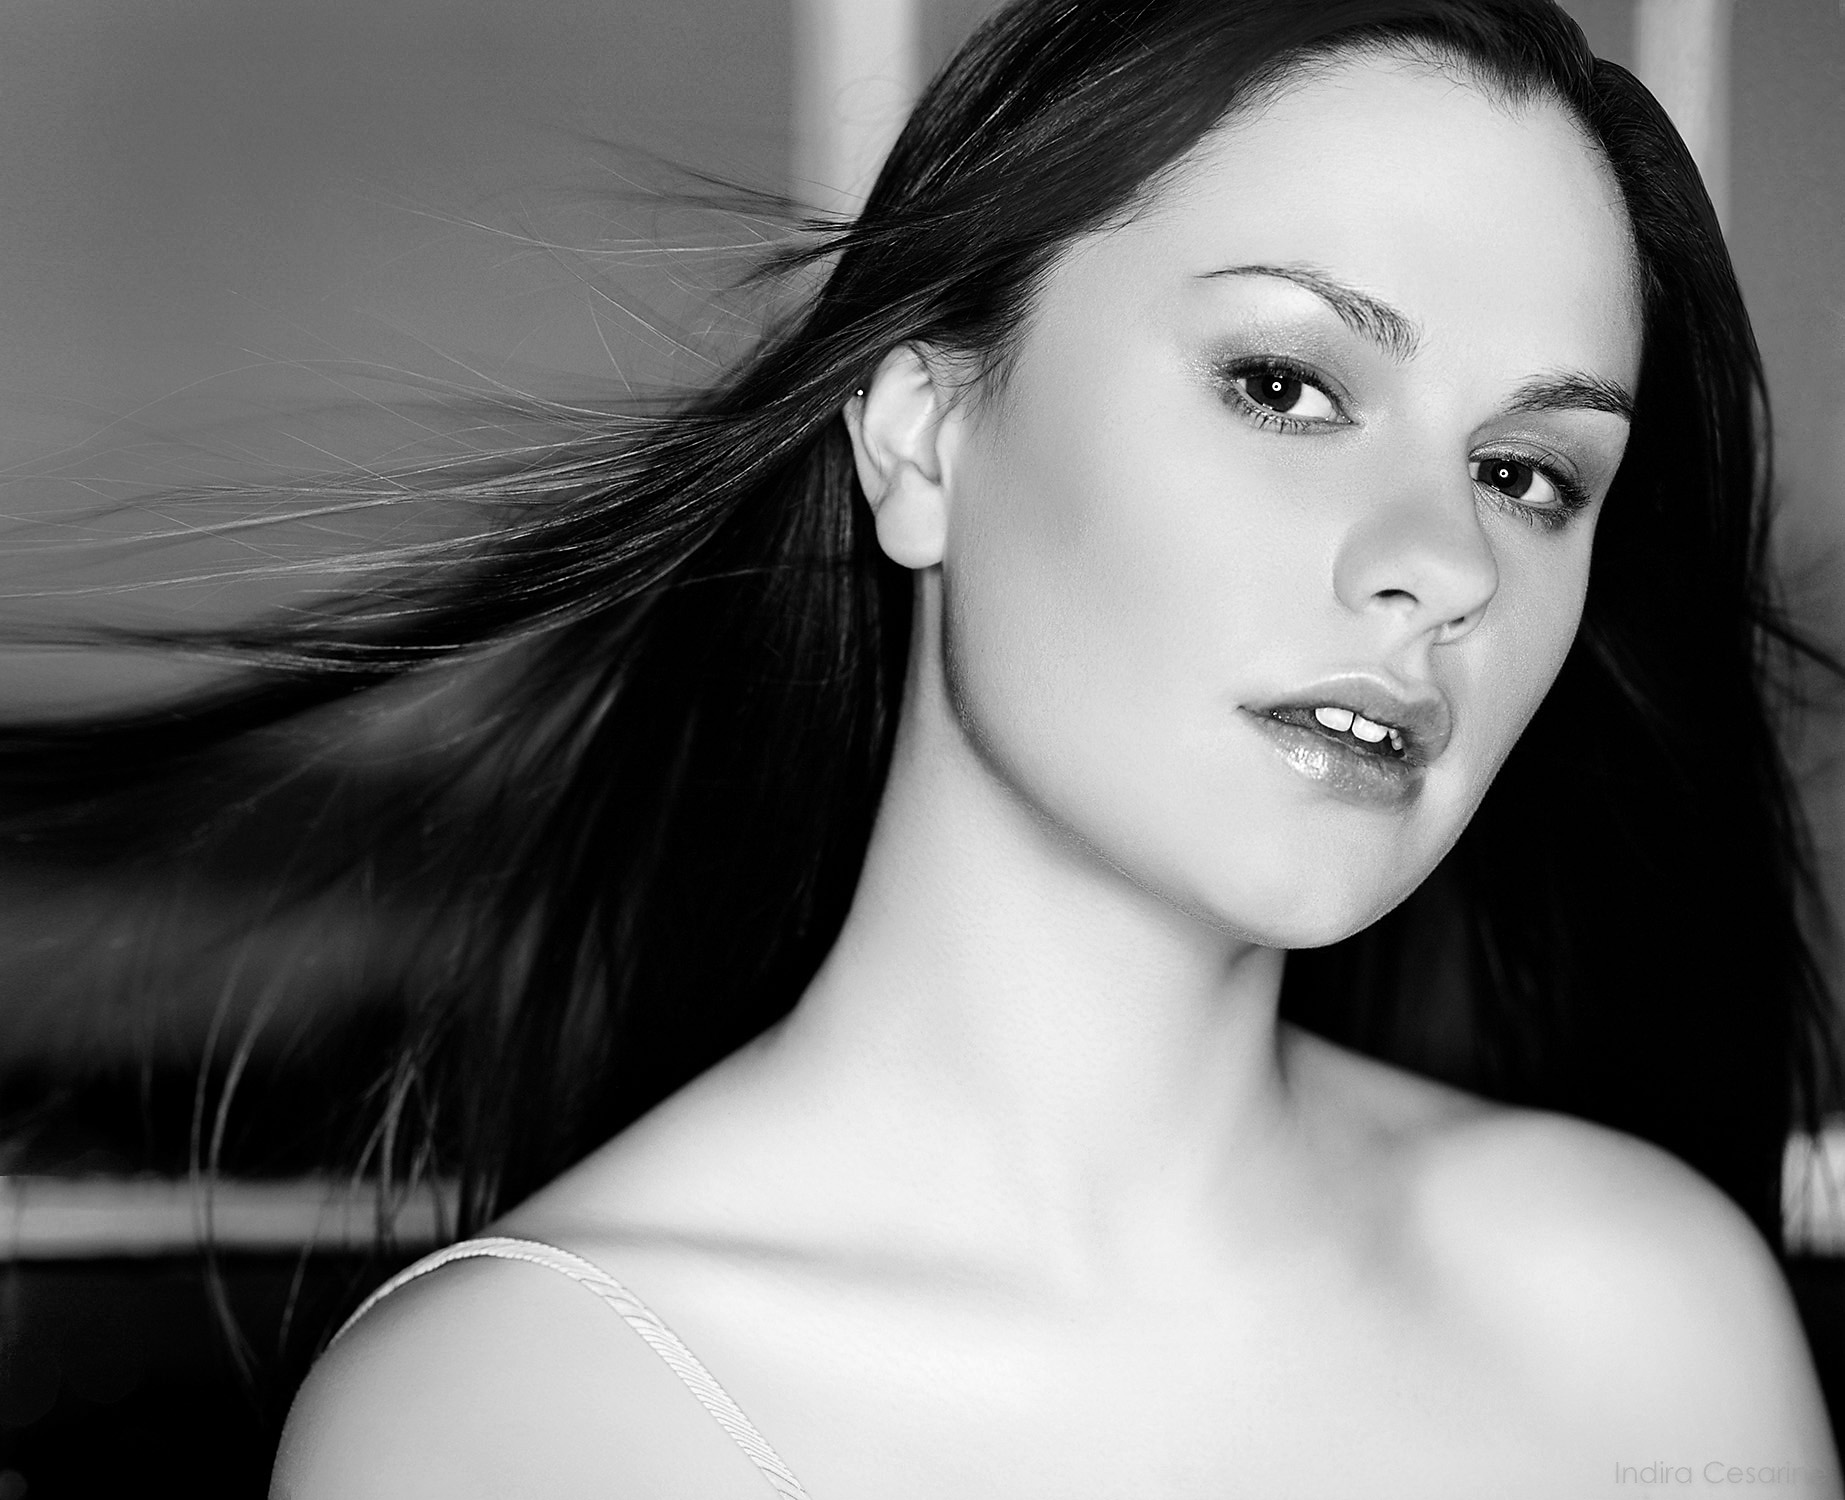 ANNA-PAQUIN-Photography-by-Indira-Cesarine-005-BW2.jpg